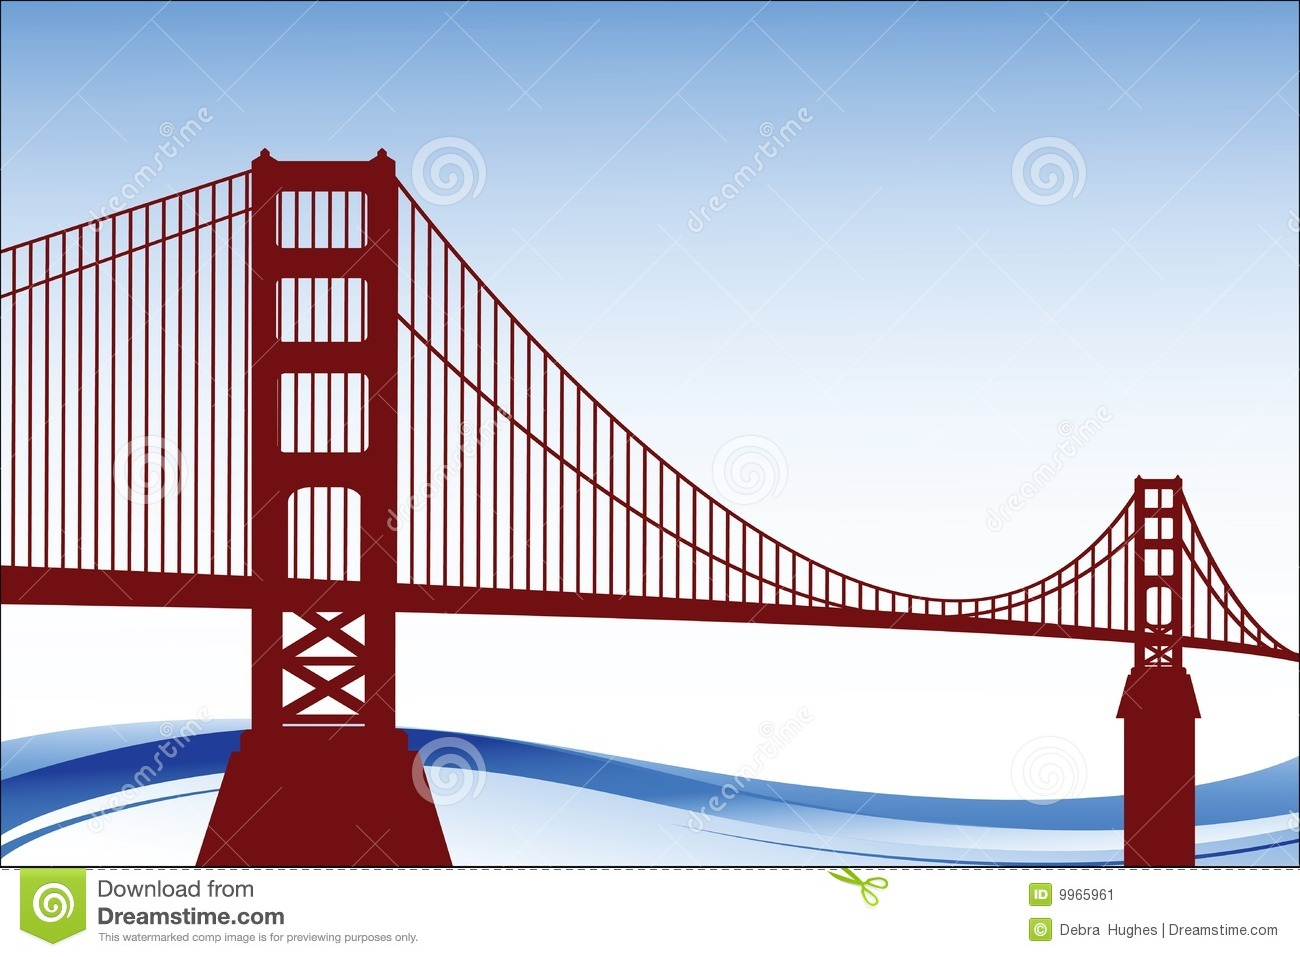 301050344845 moreover Stock Image Golden Gate Bridge Landscape Perspective Image9965961 further Heating Cooling Icon also Semi Hermetic  pressor besides Stock Photo Writing Icon Image627250. on heating and air conditioning icon